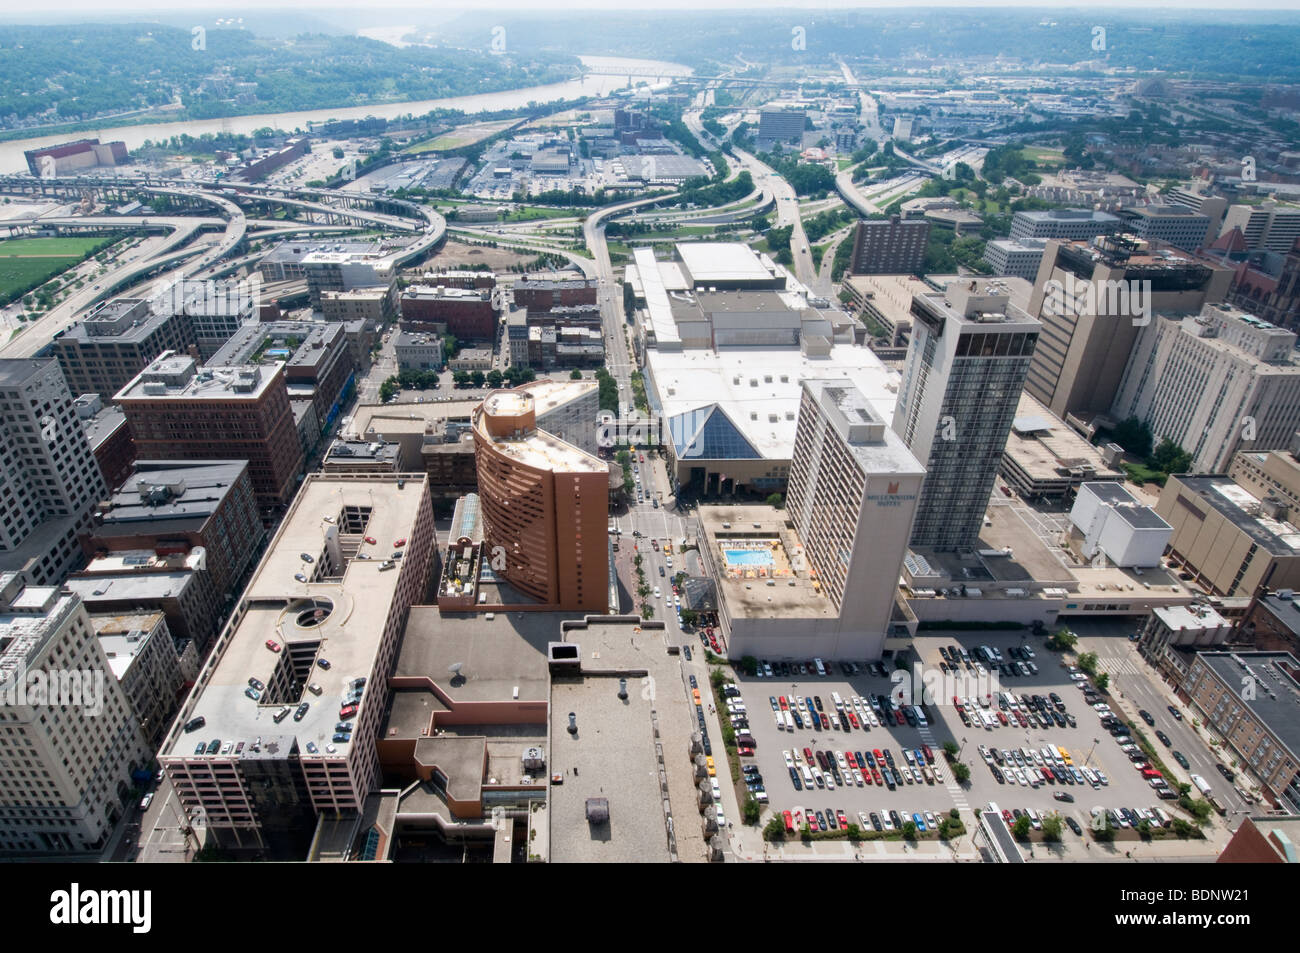 Highways crossing downtown Cincinnati, OH - Stock Image